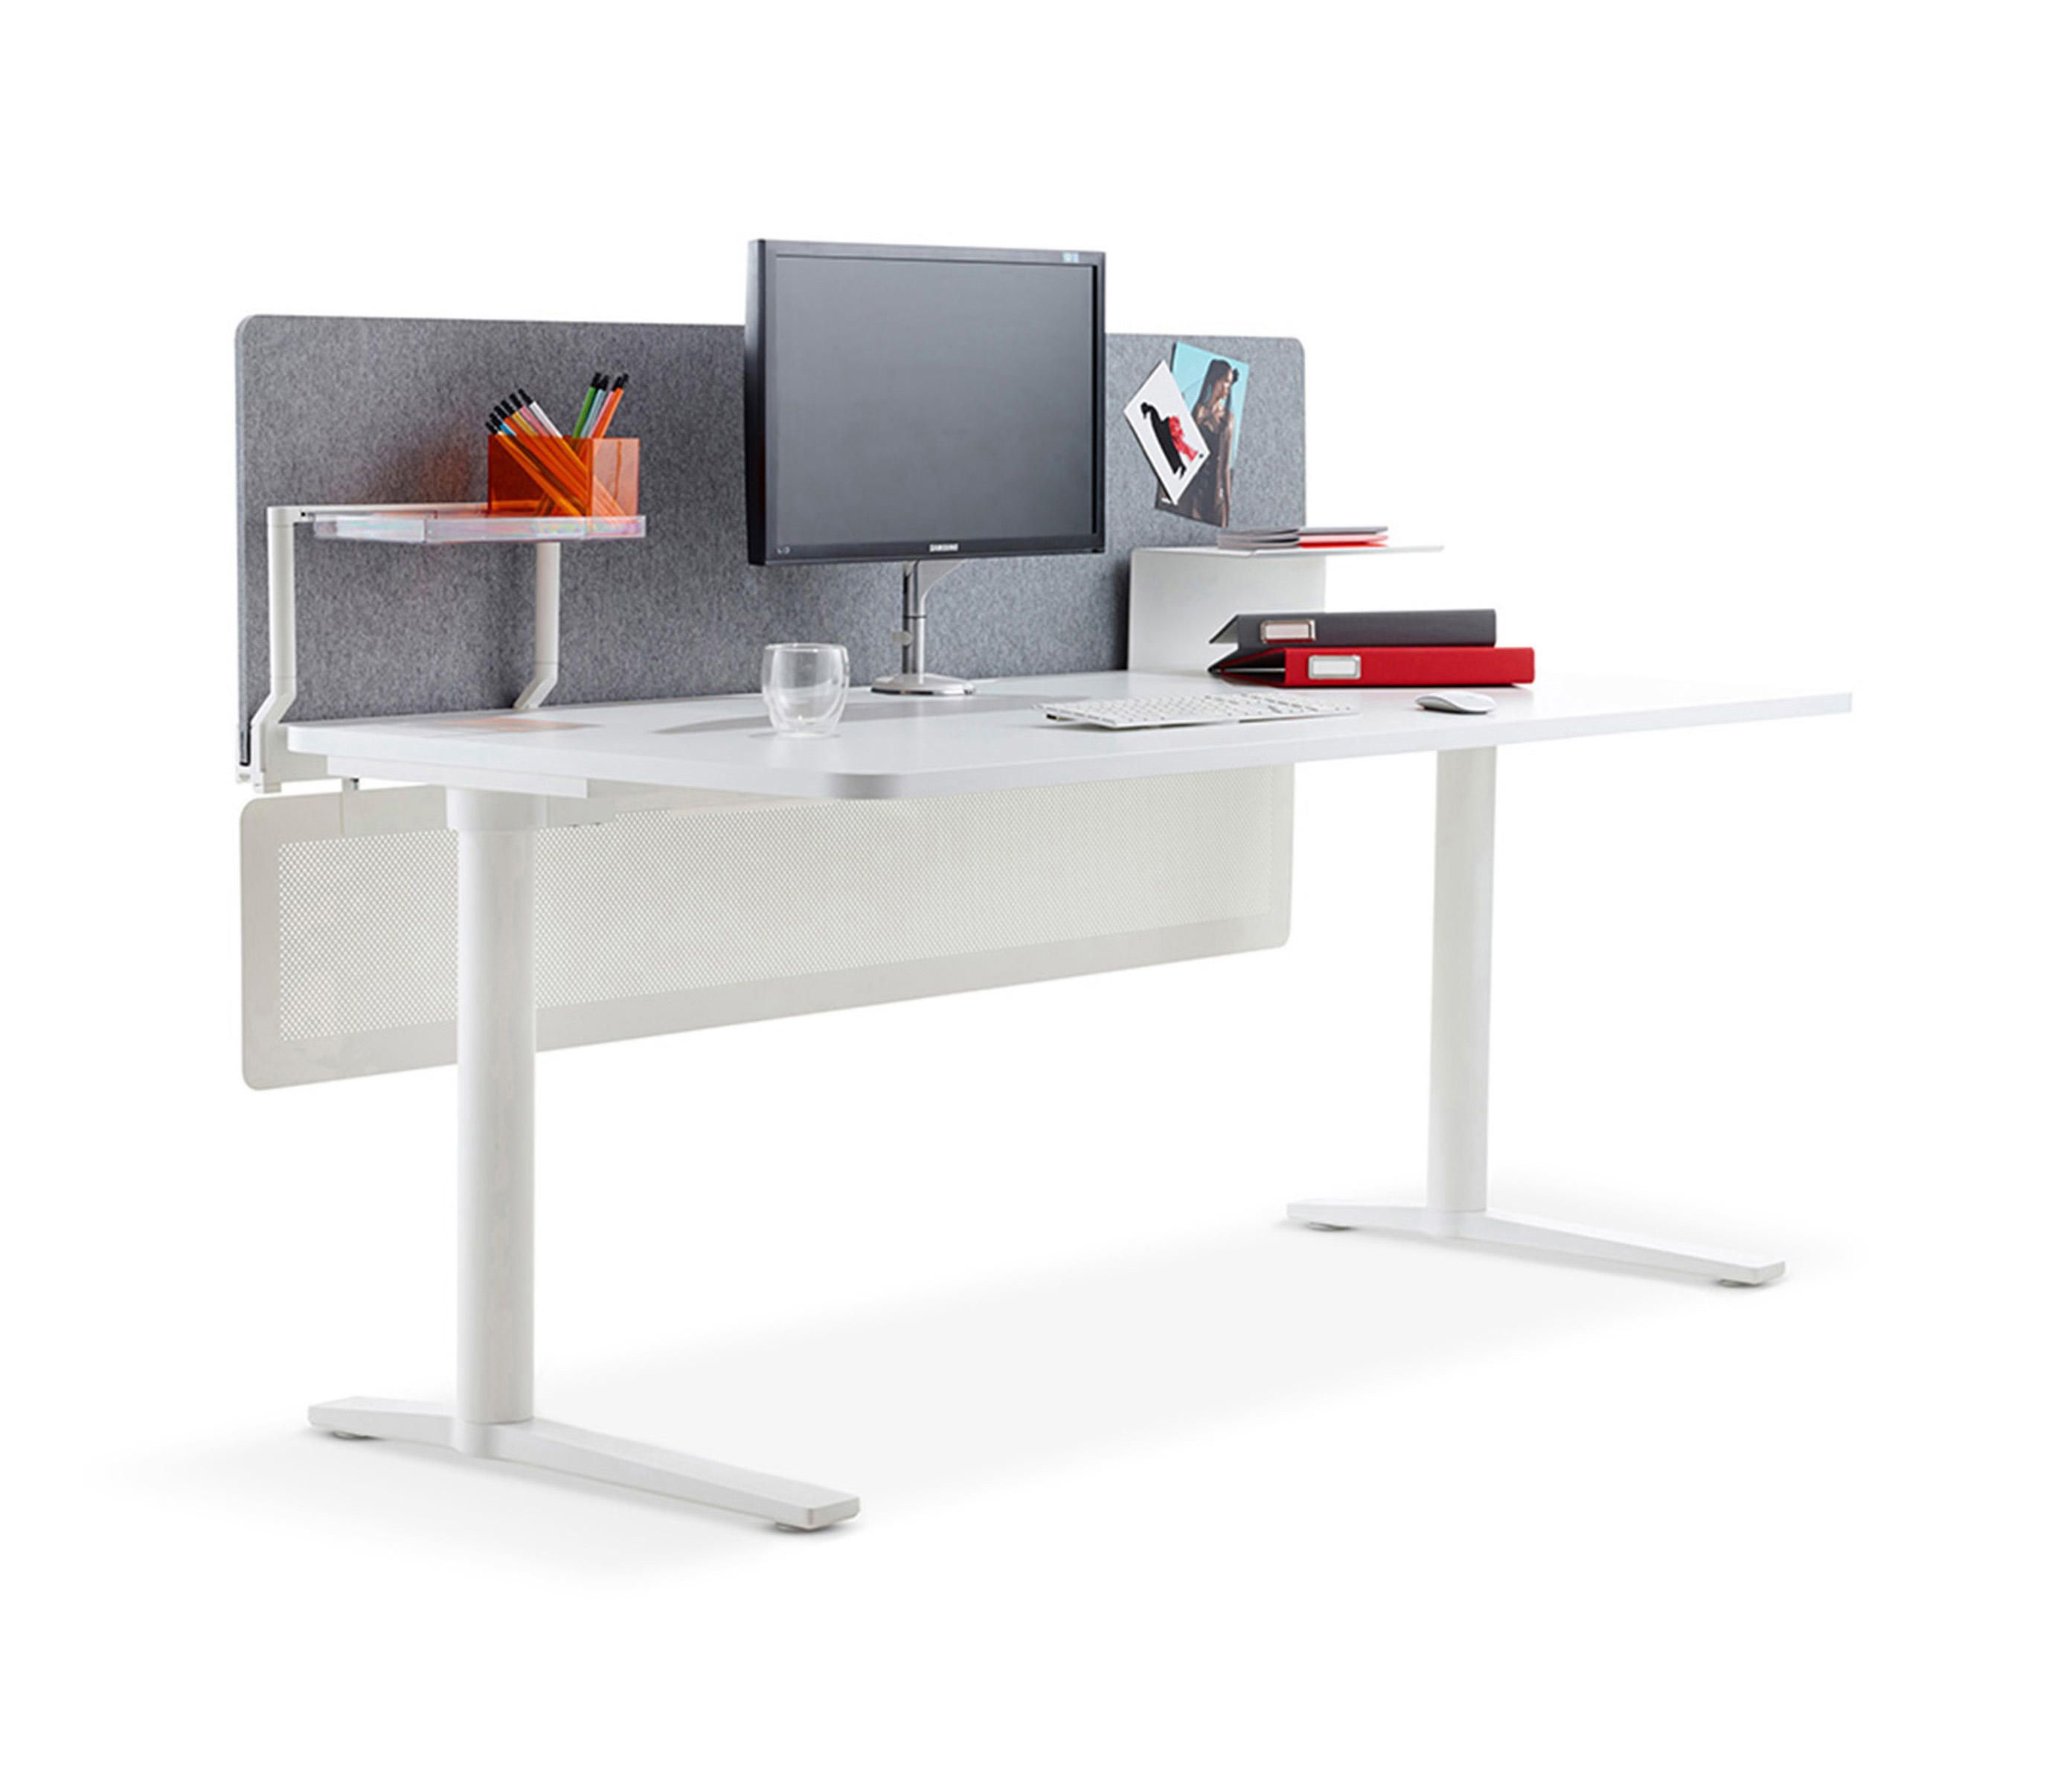 Pin By Allan McLernon On Office Furniture